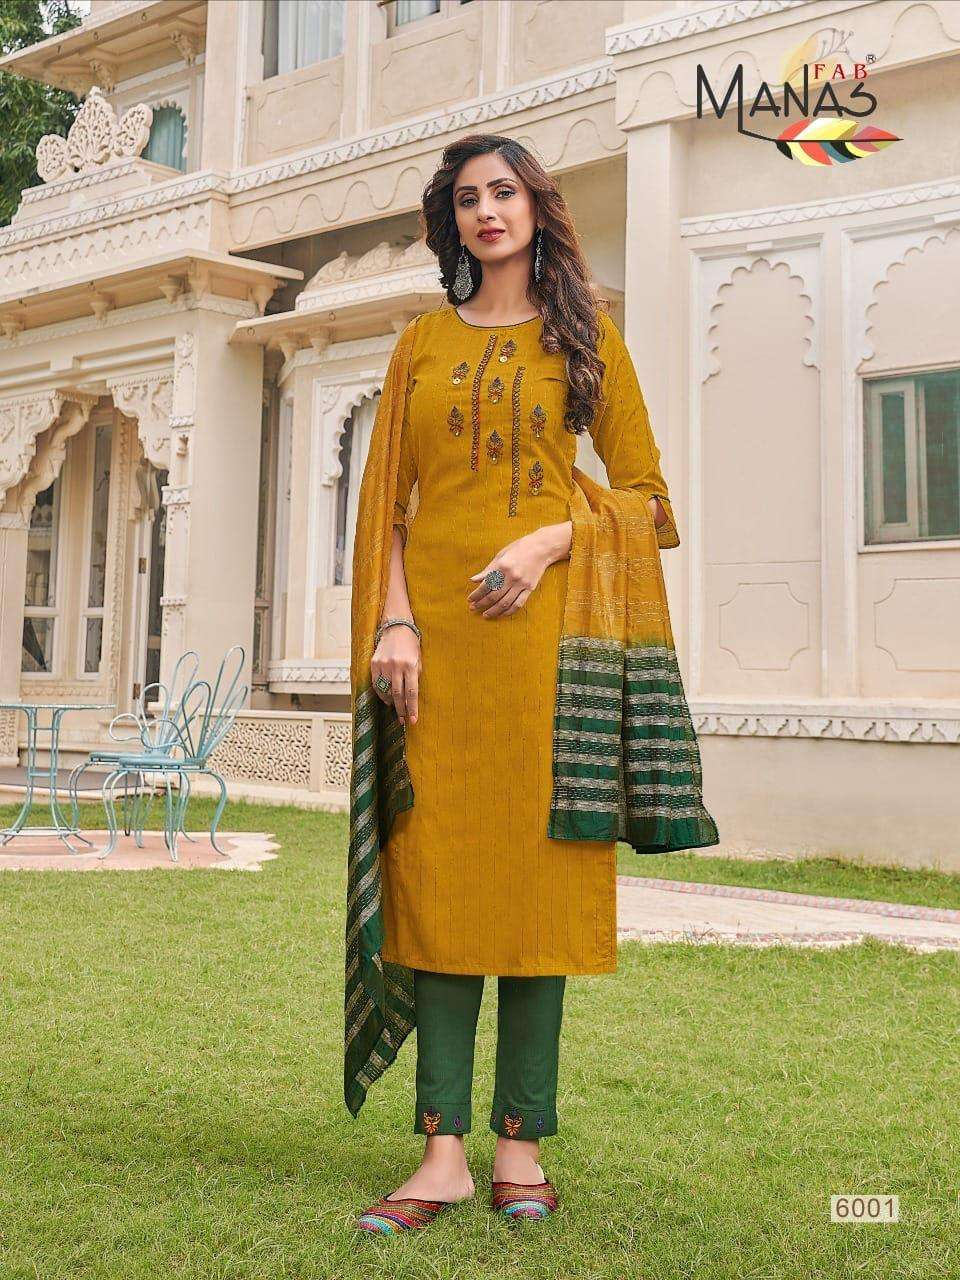 Manas Fab Arina fancy Weaving Sequence Embroidery Hand Work Readymade Suits collection